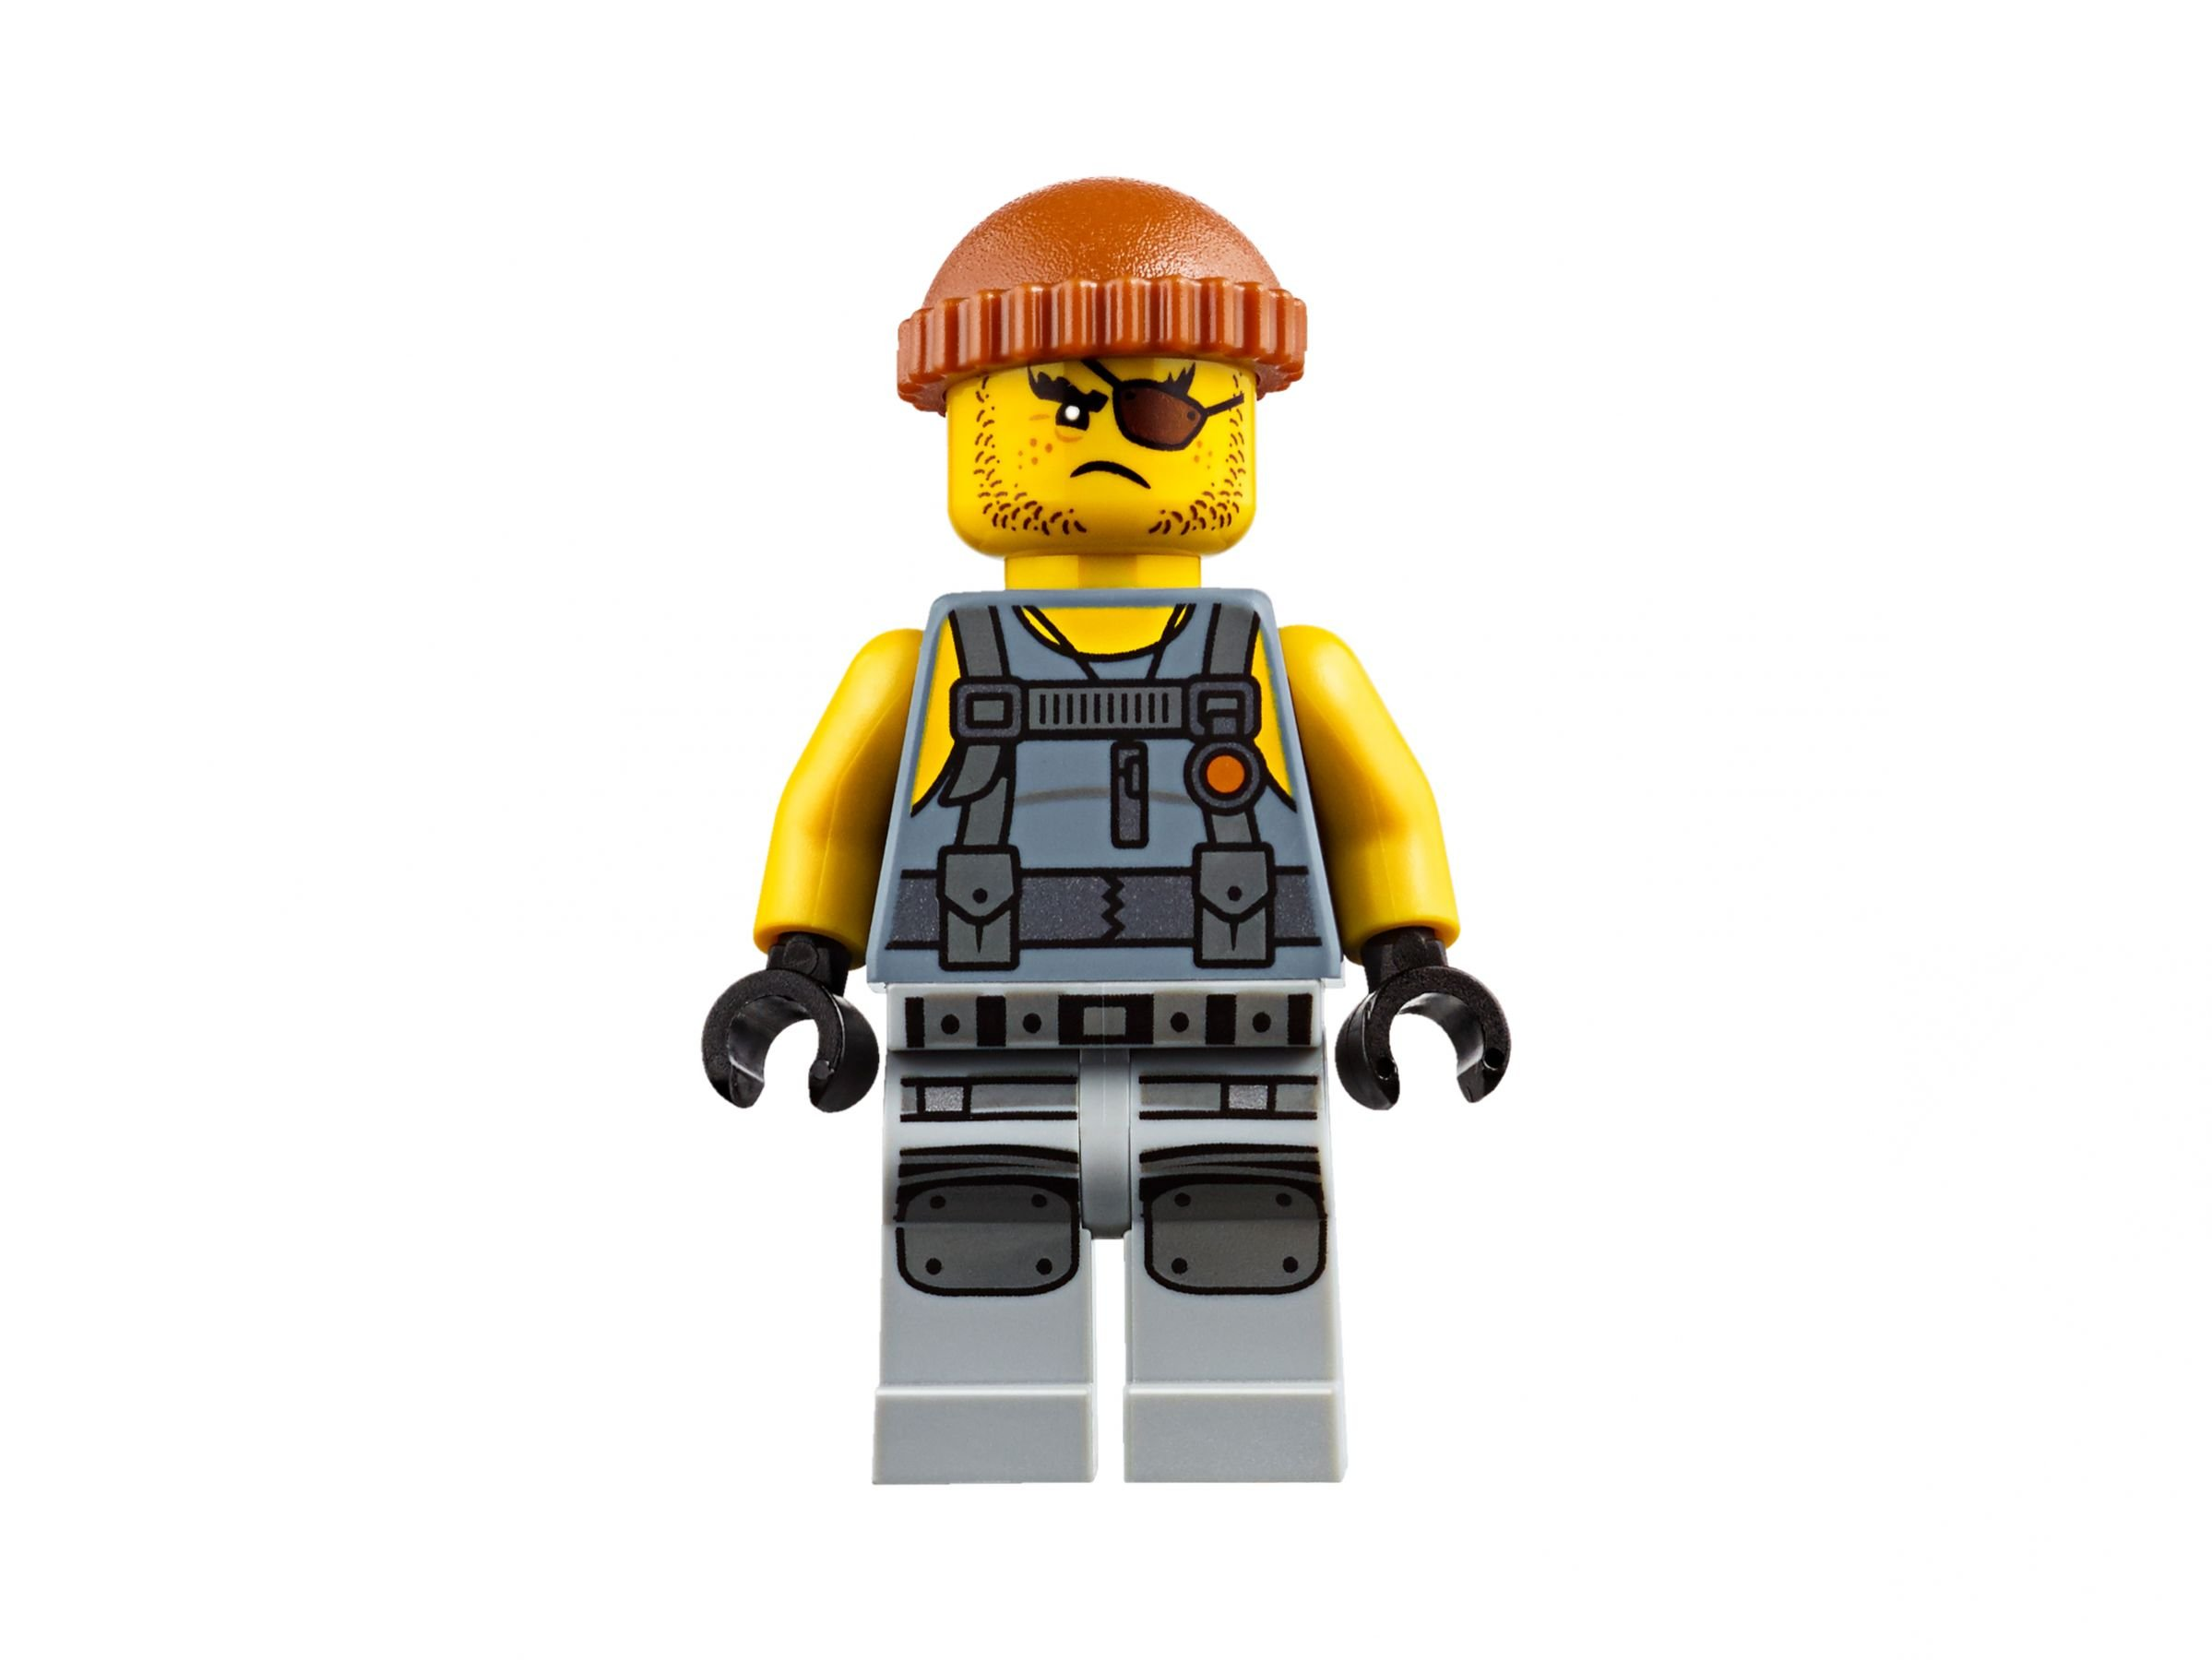 LEGO The LEGO Ninjago Movie 70656 Garmadon, Garmadon, GARMADON! LEGO_70656_alt7.jpg